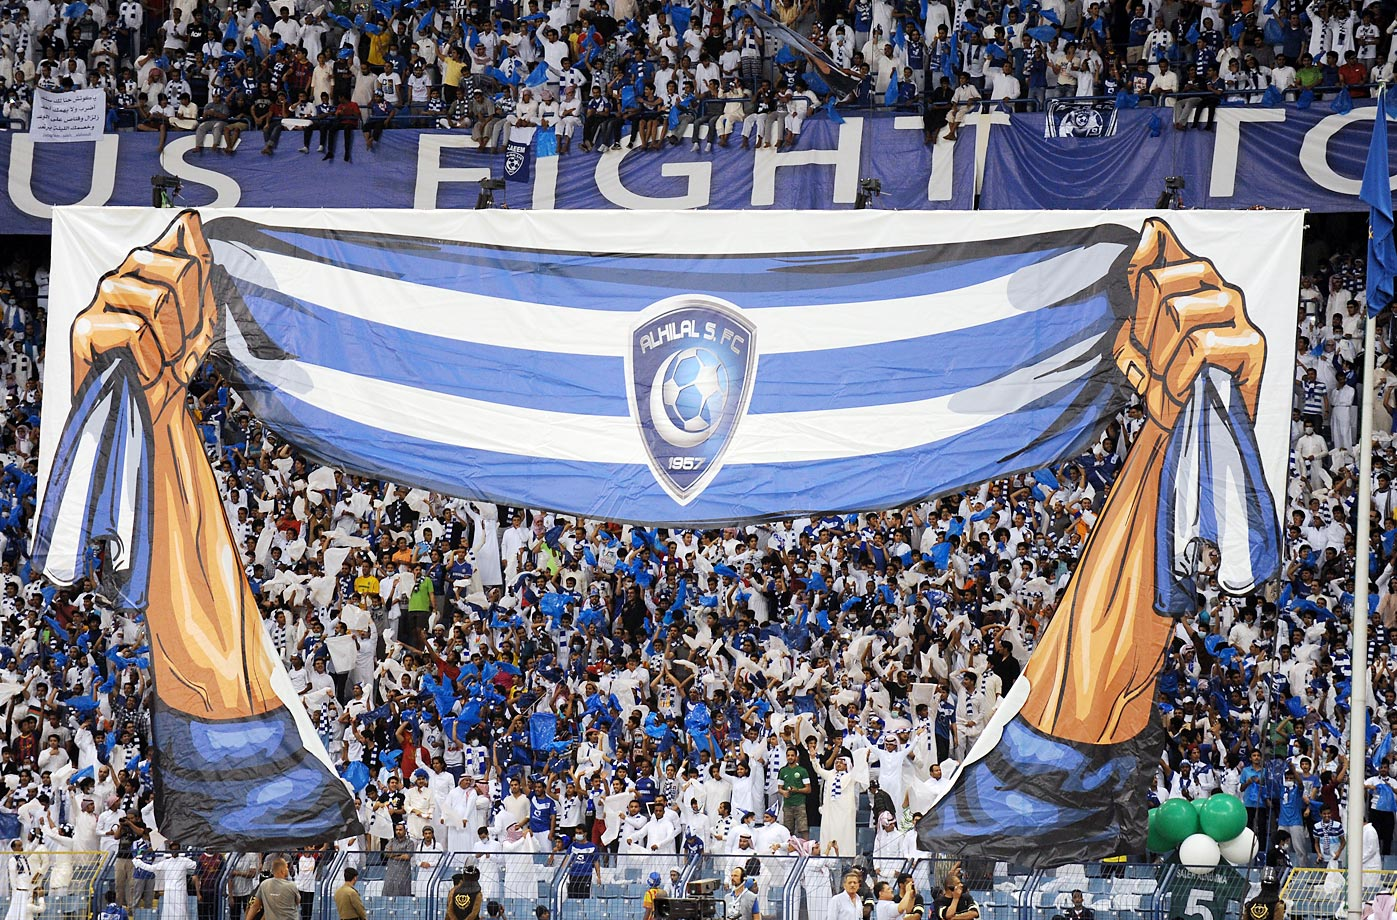 Fans of the Saudi Al-Hilal team celebrate after the scoring of a goal against Uzbekistan's Bunyodkor.